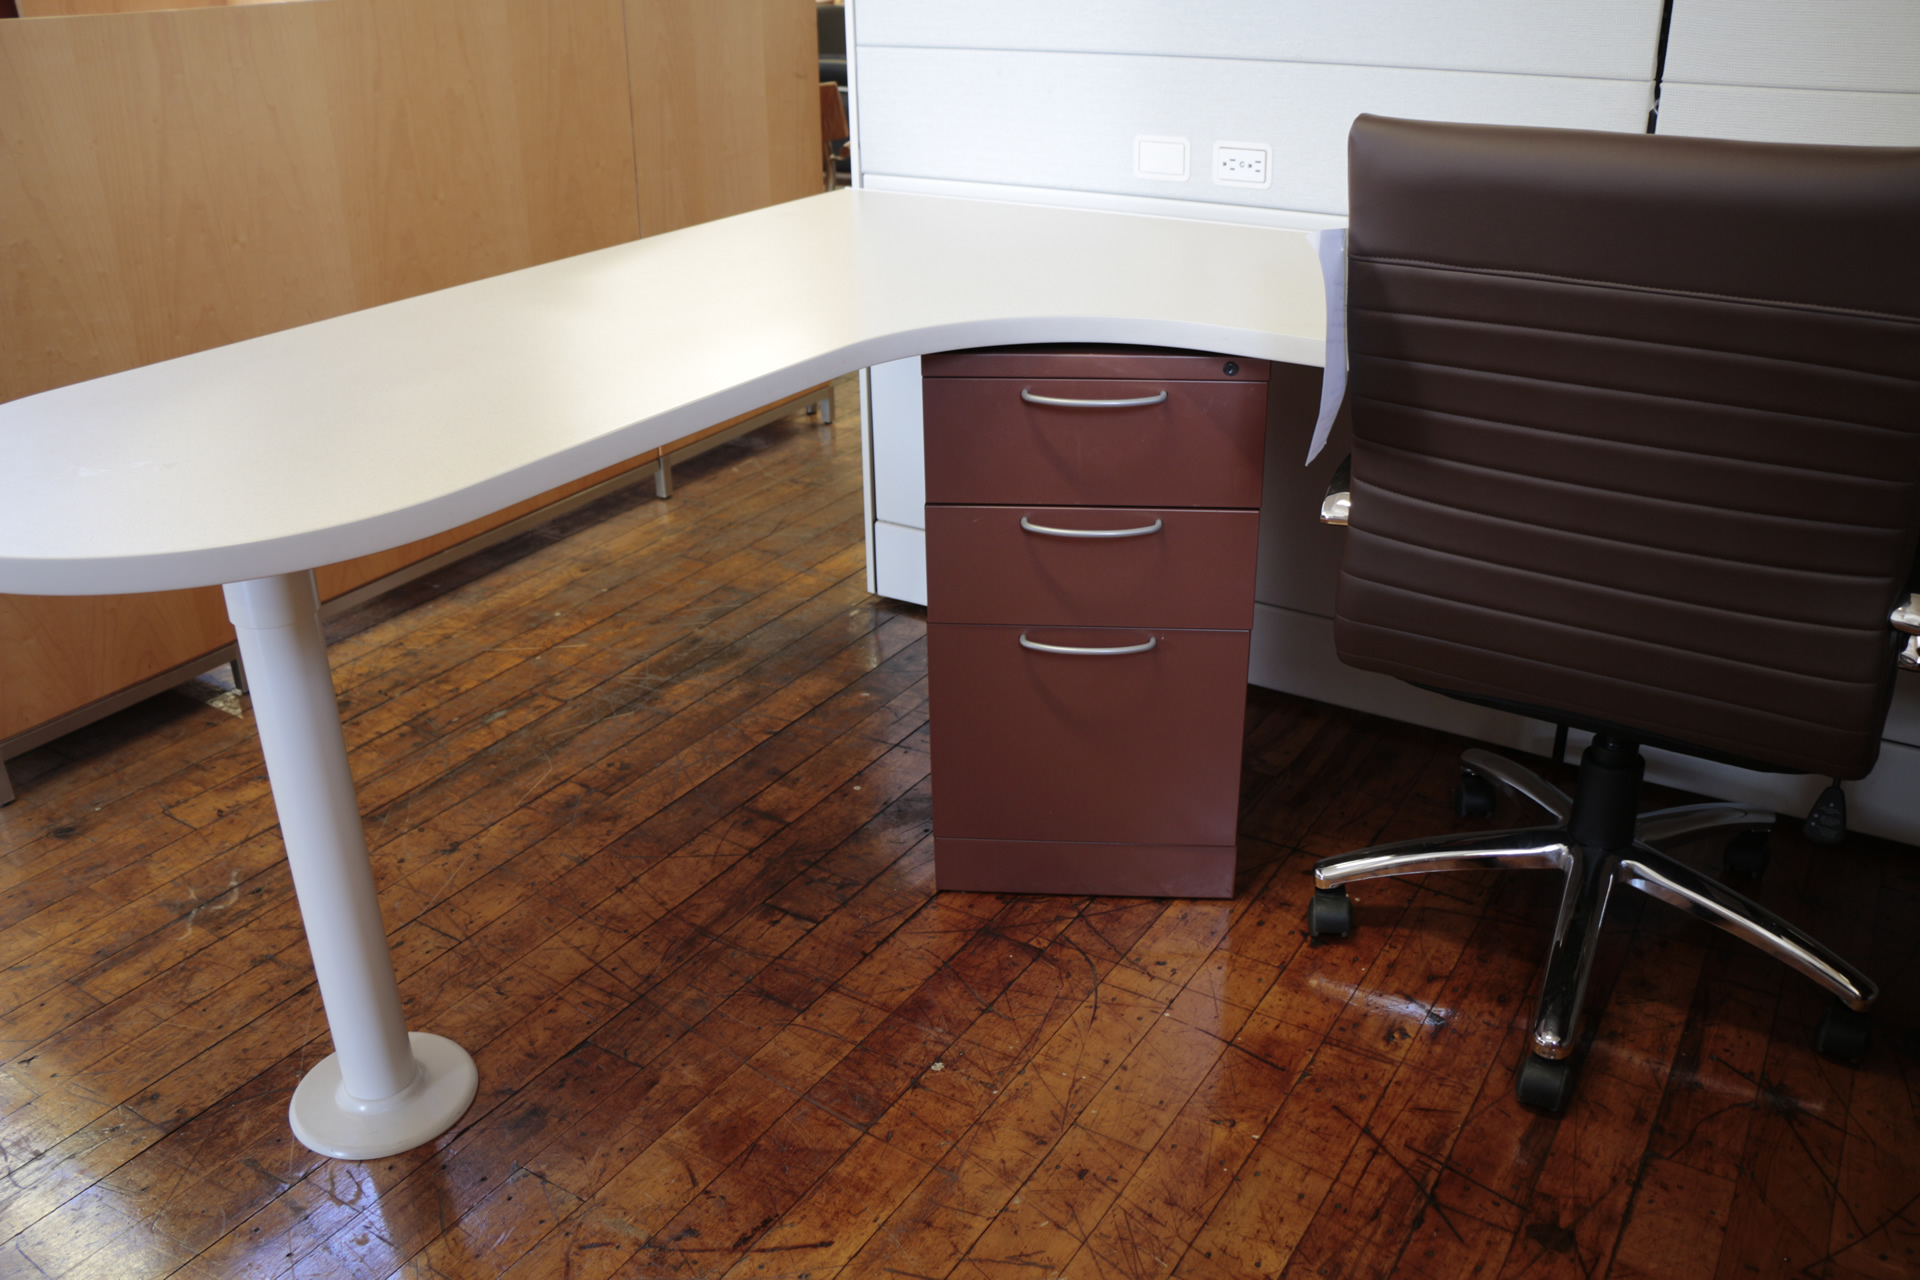 peartreeofficefurniture_peartreeofficefurniture_mg_4558.jpg